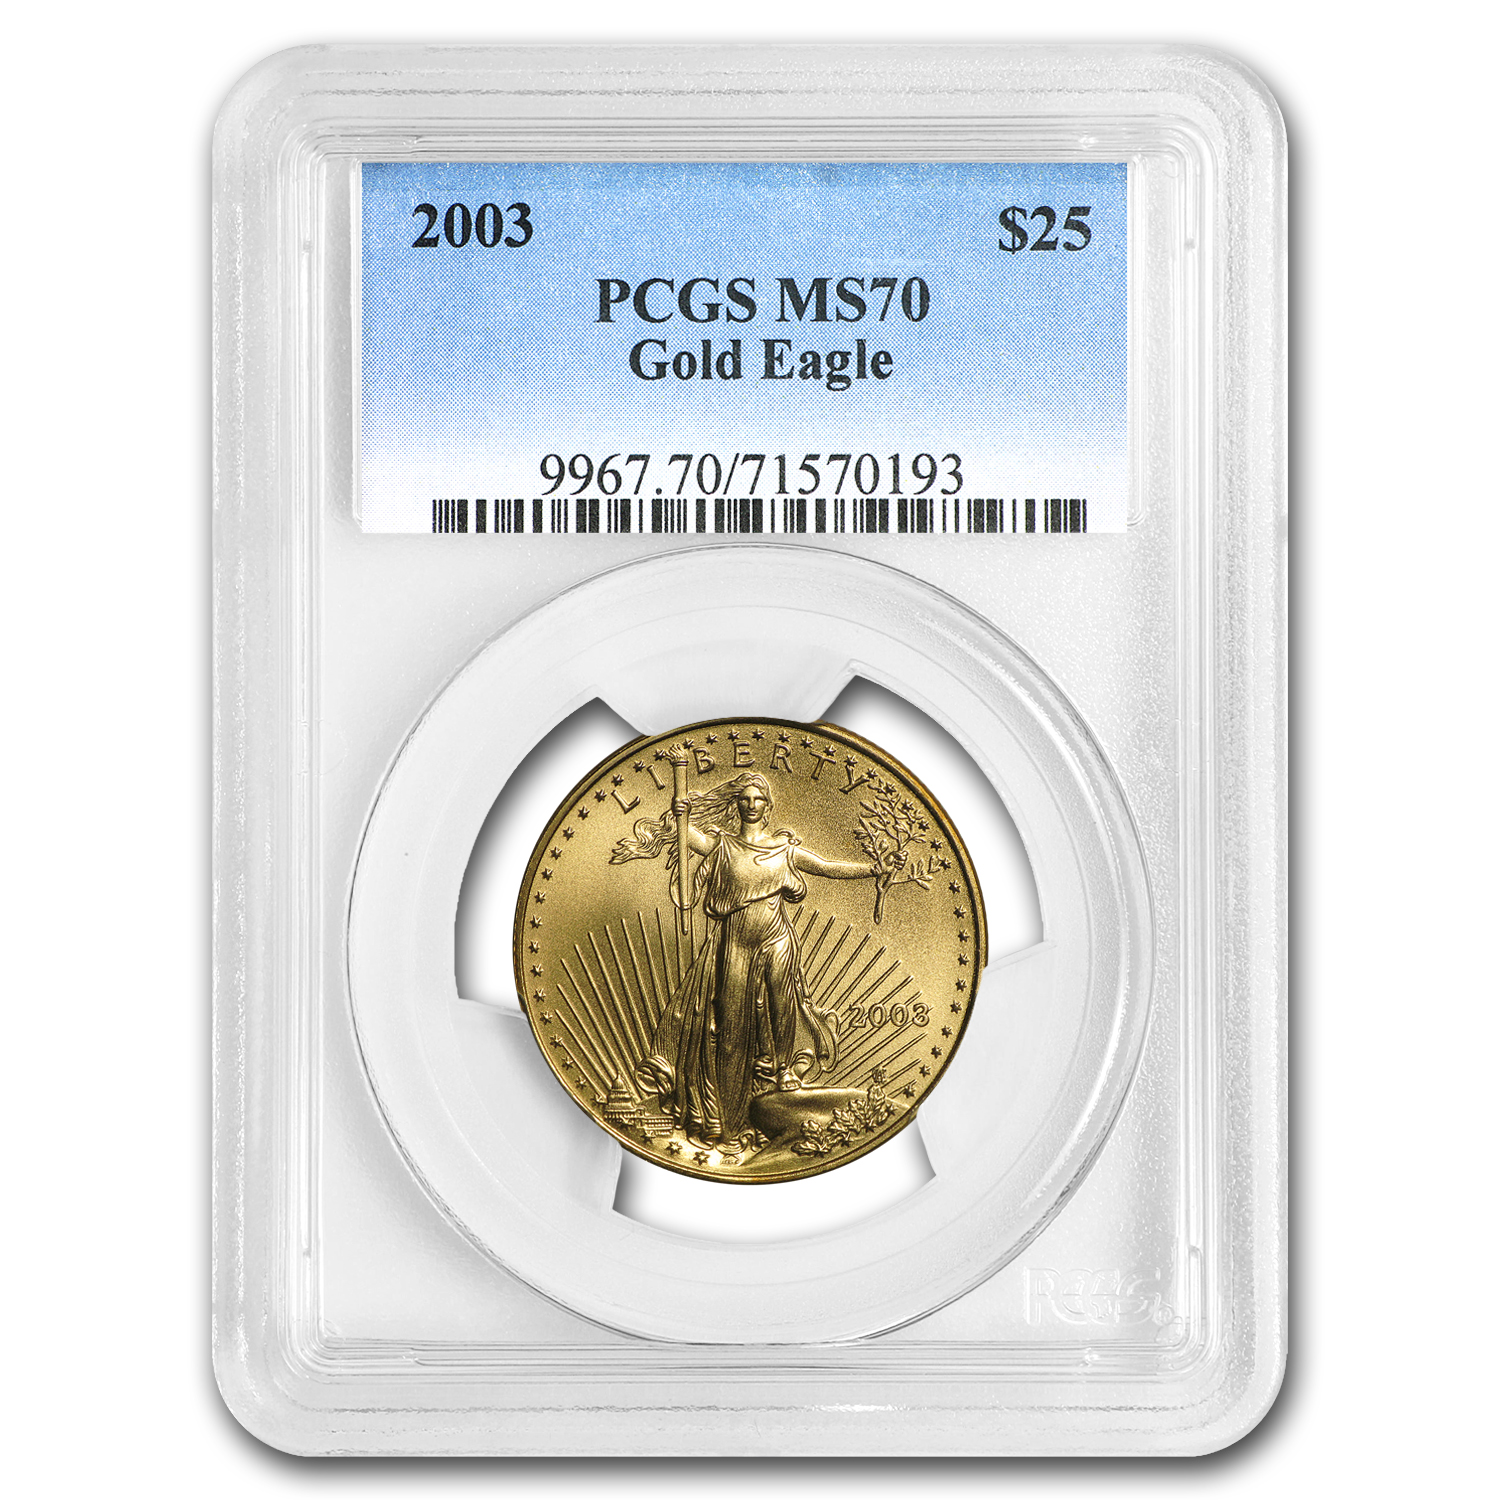 2003 1/2 oz Gold American Eagle MS-70 PCGS